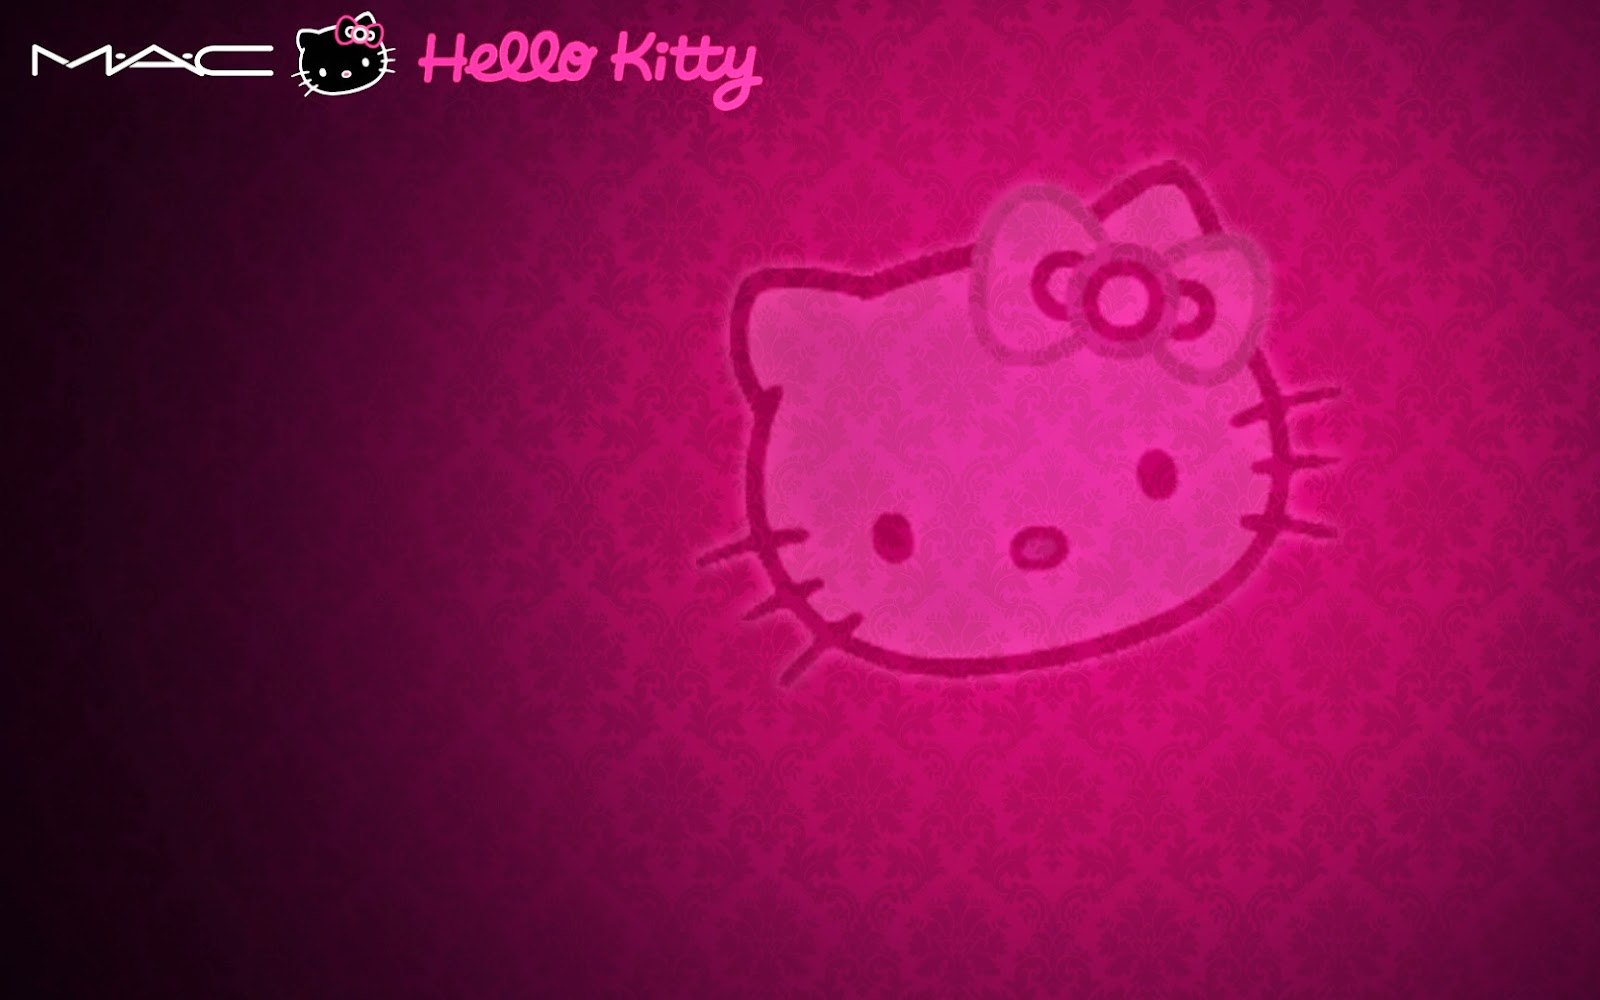 New Hello Kitty Wallpapers  Hello Kitty Wallpapers  Part  1600x1000